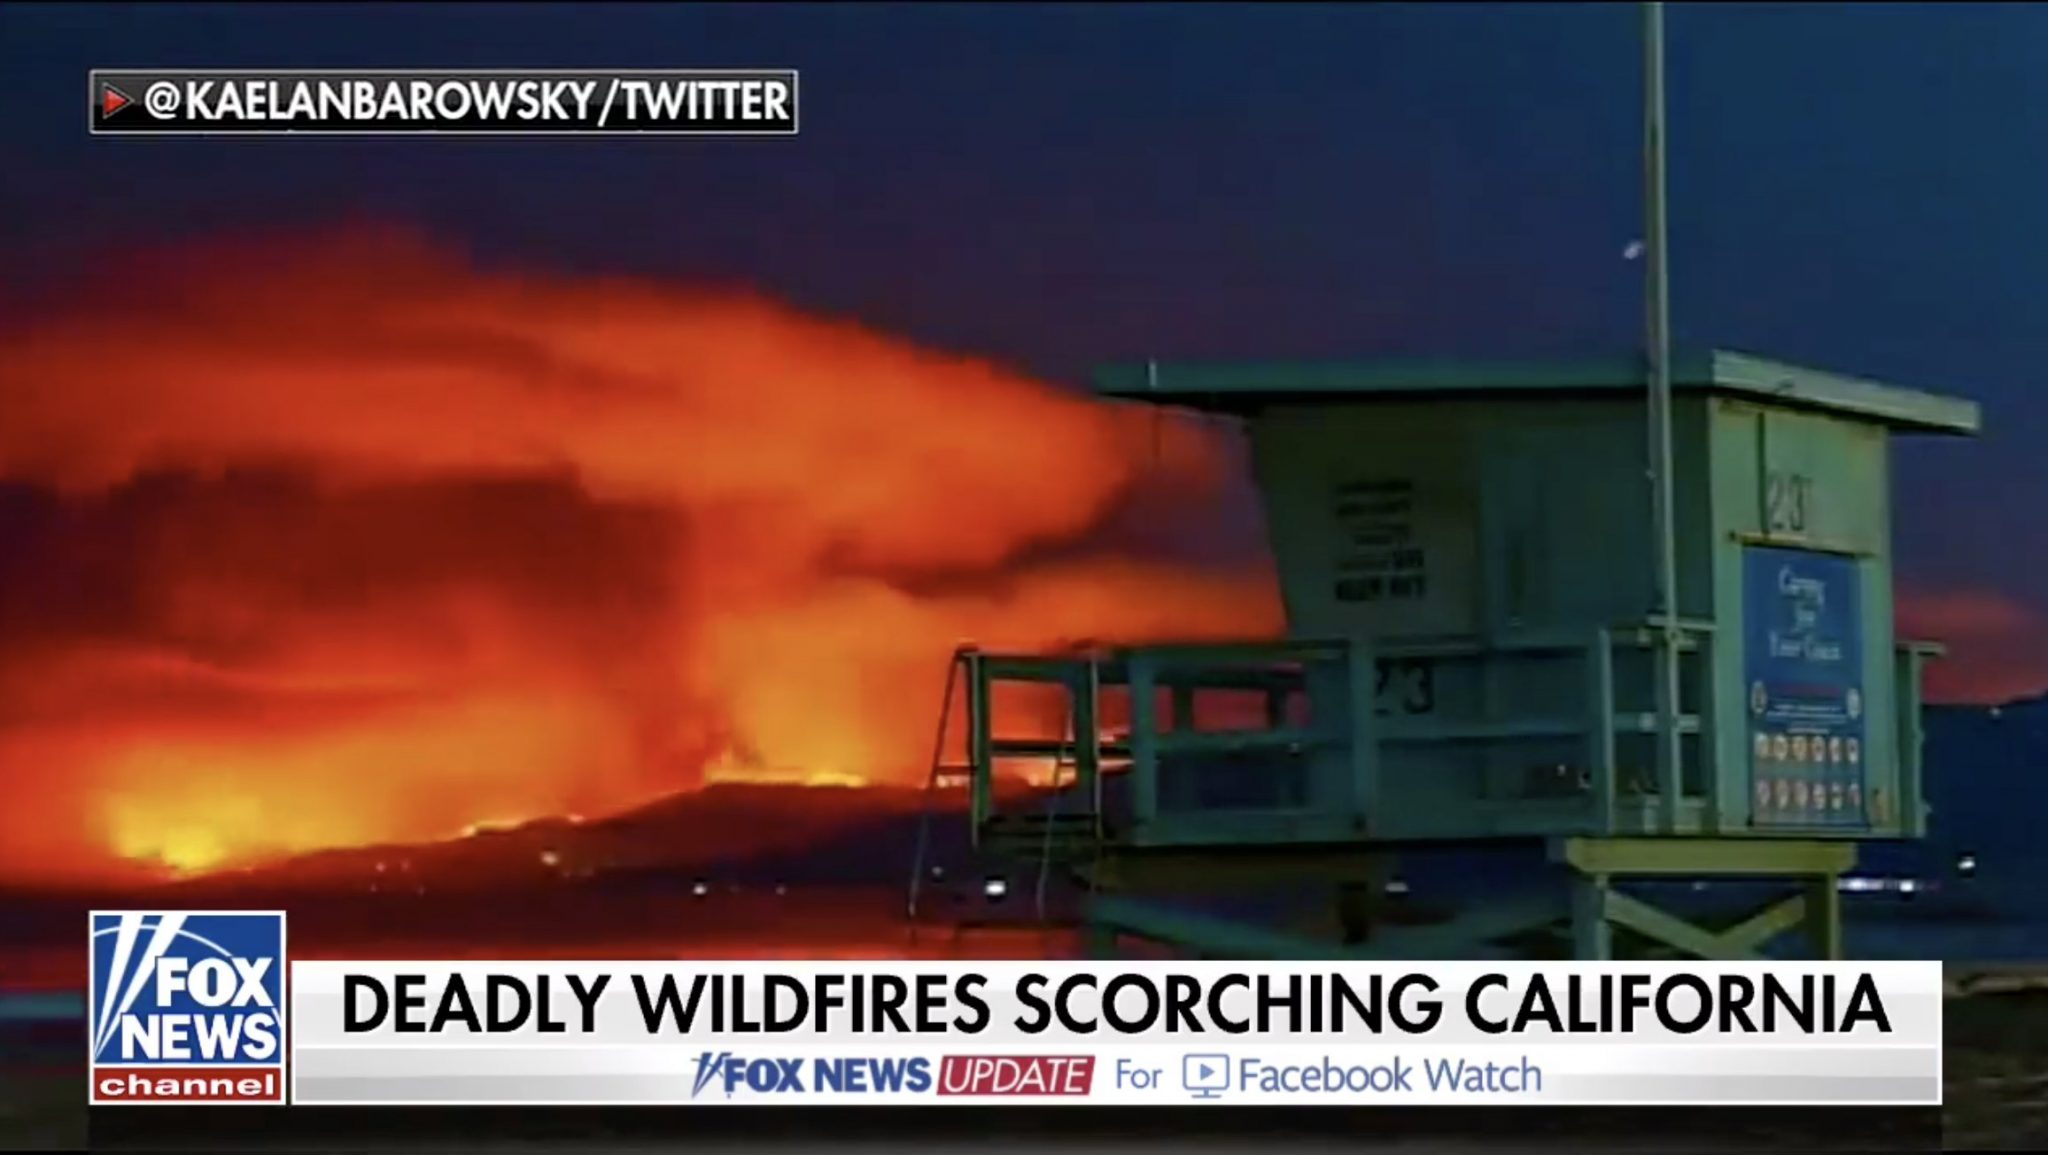 California Fires Update: More than 8,000 firefighters on the job! 29 dead more than 200 missing!